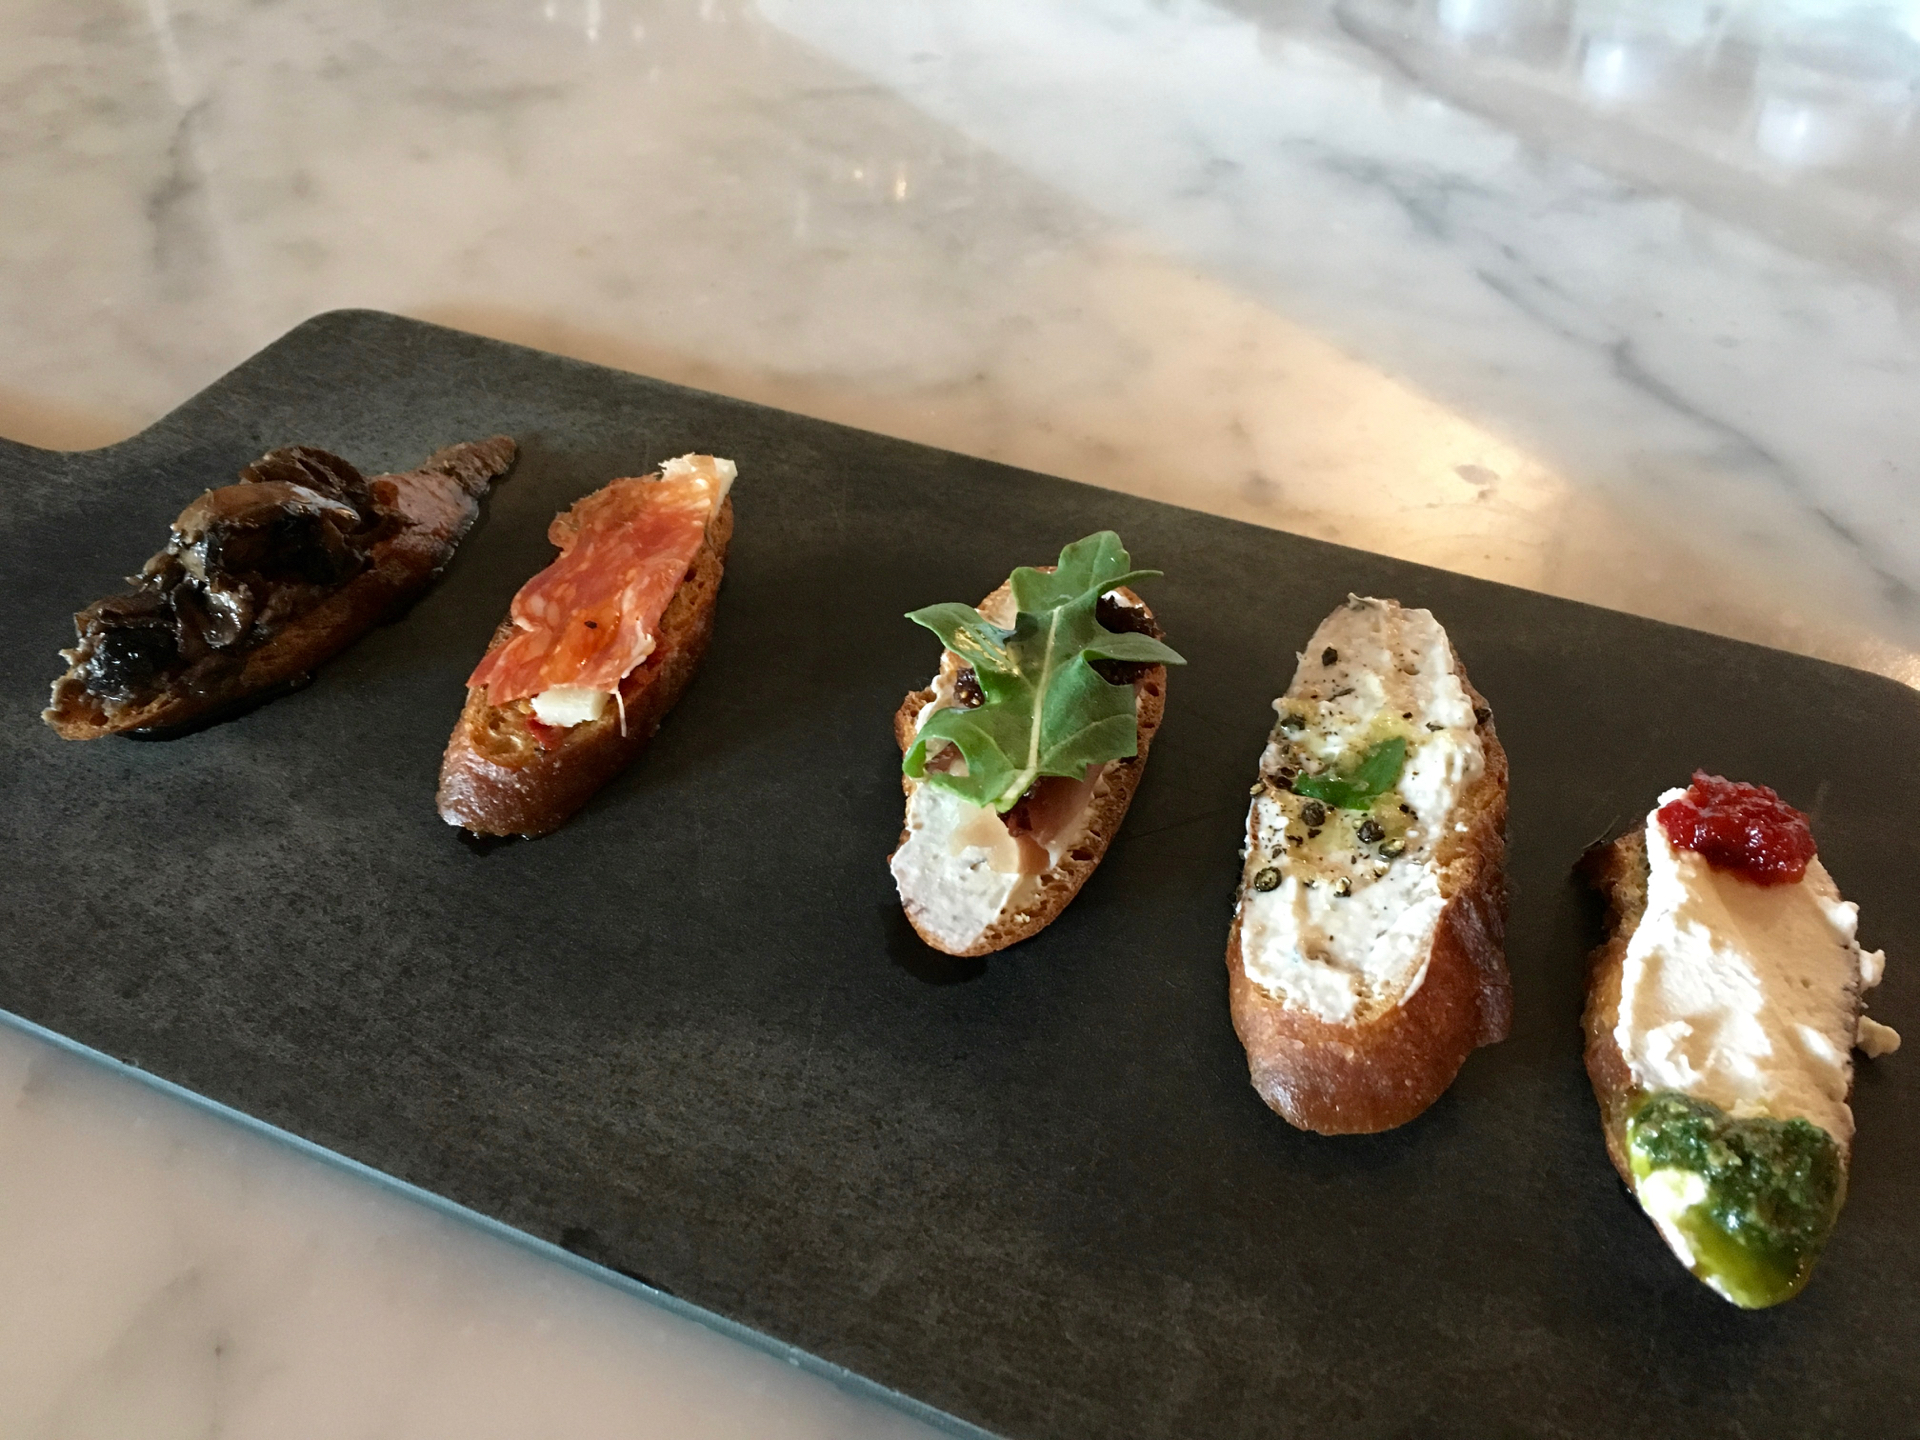 A crostini sampler at Enoteca La Storia.